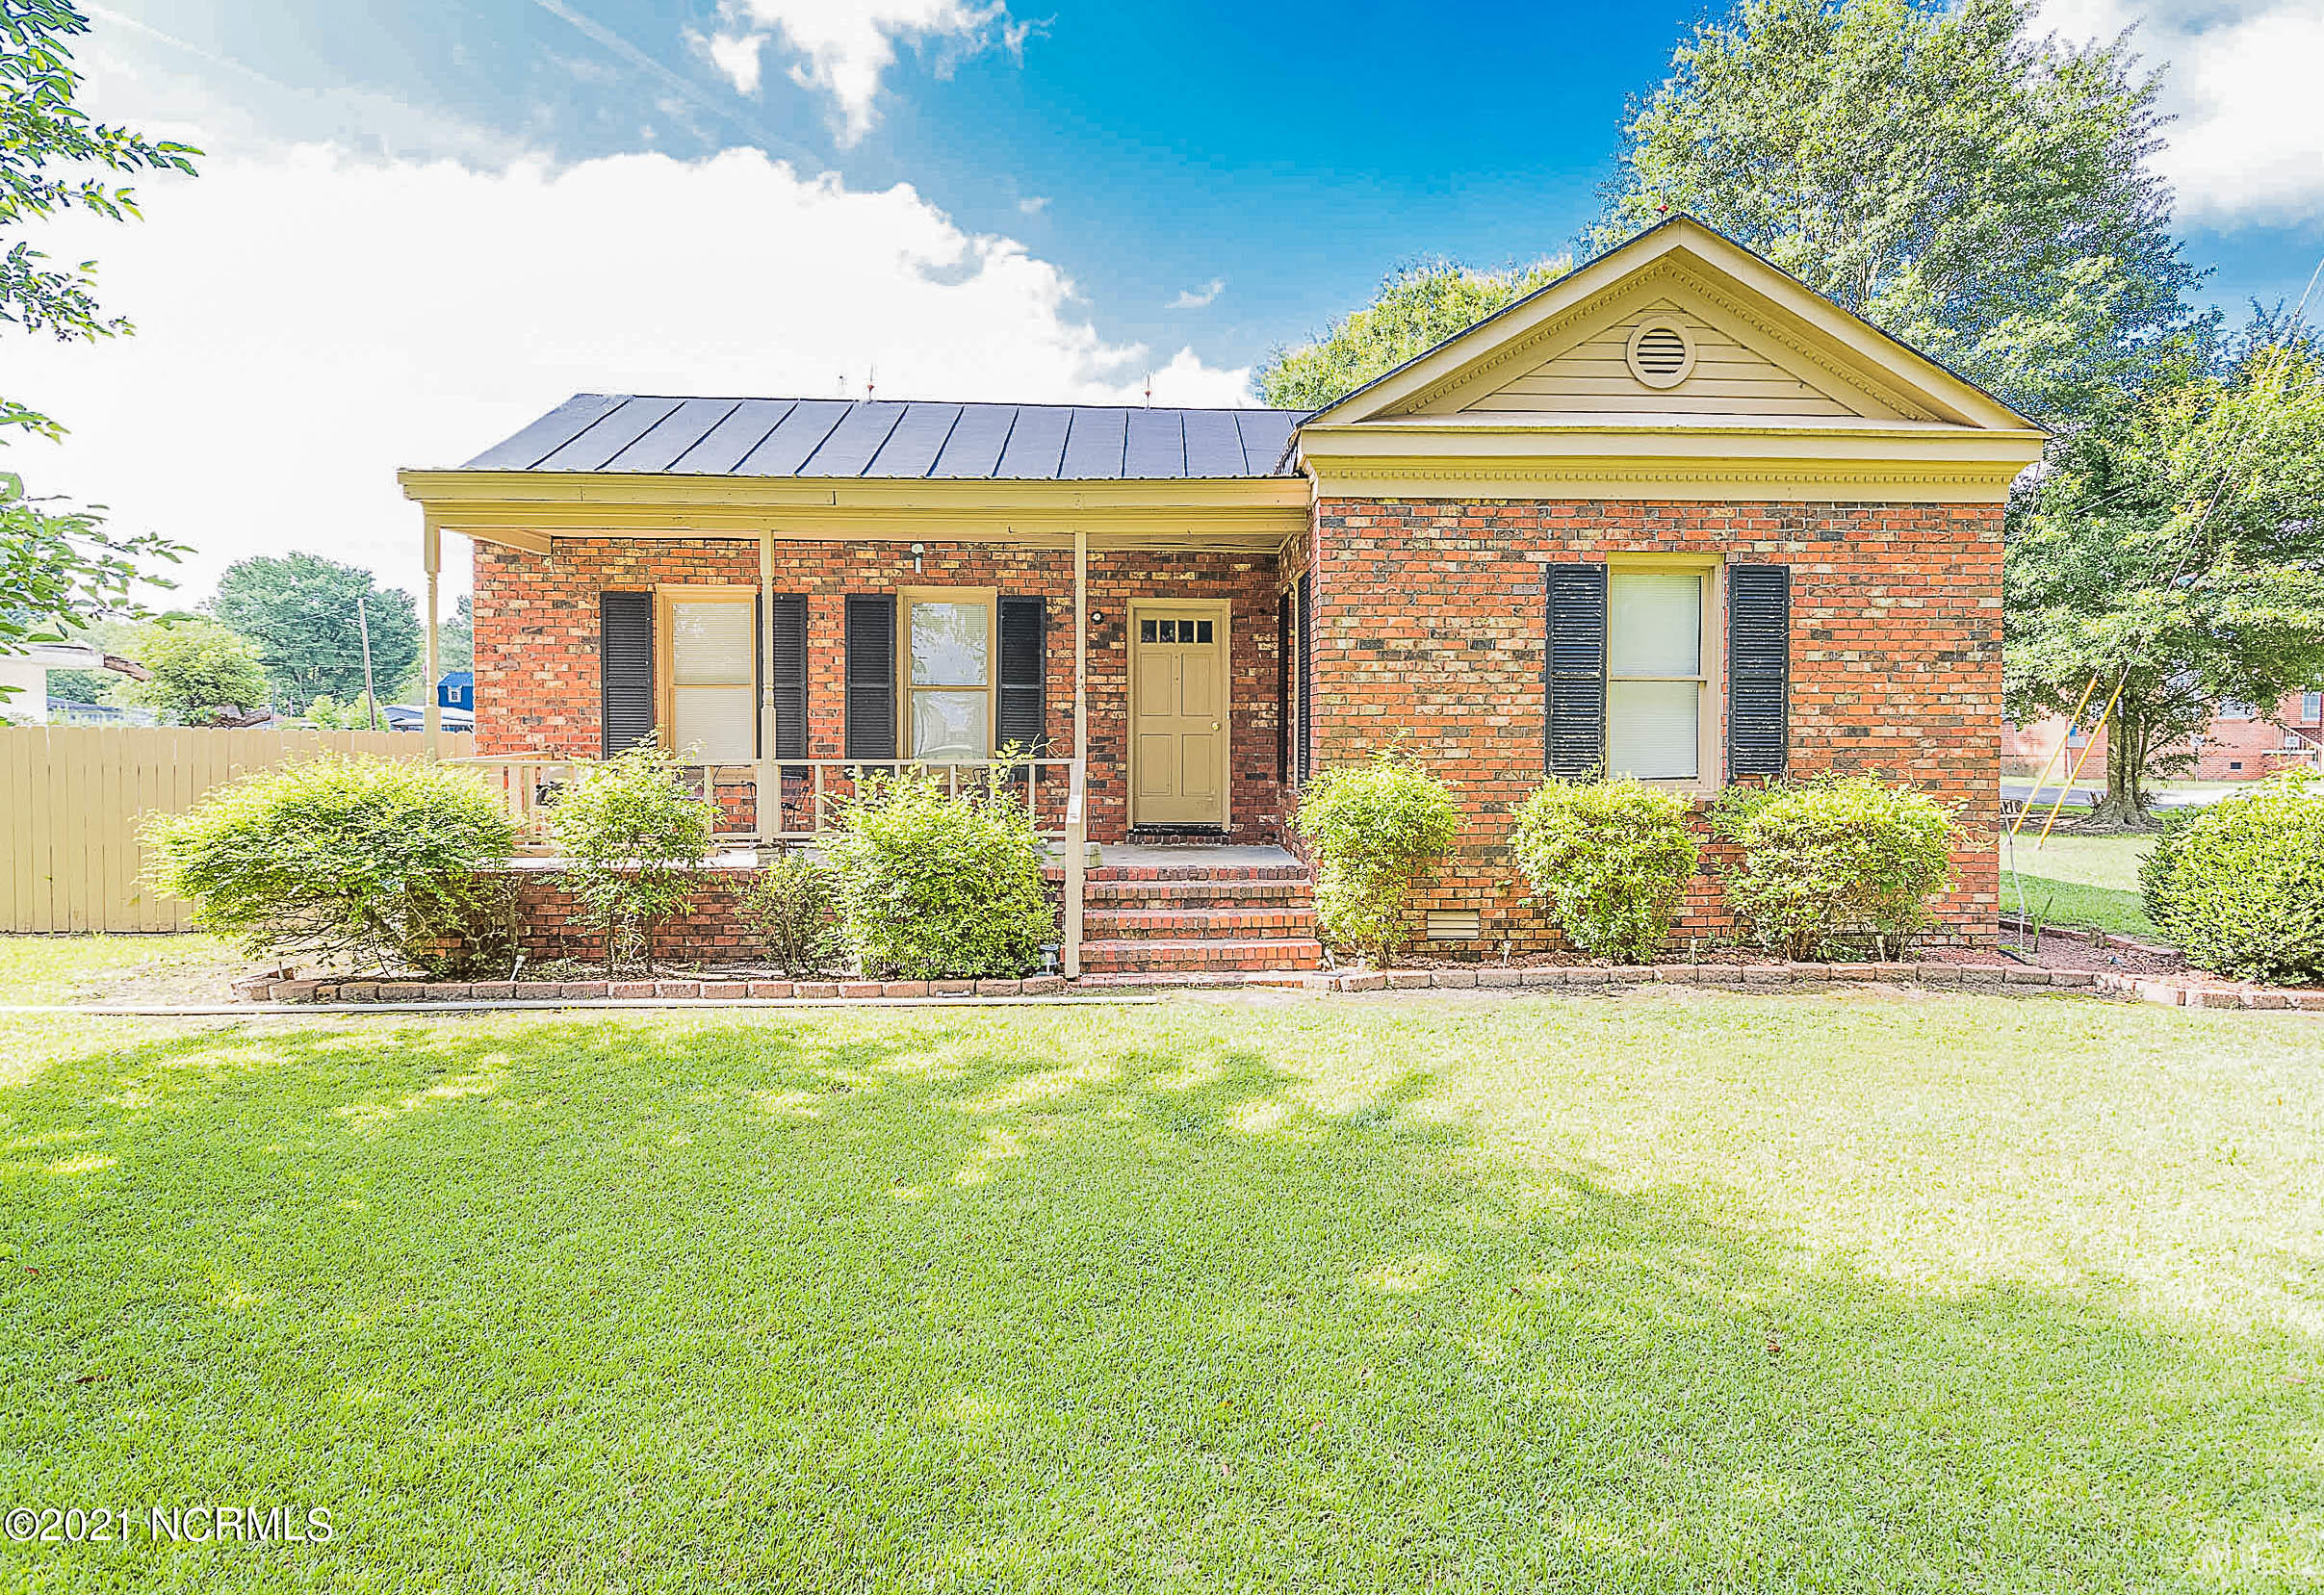 4291 Highway 41, Comfort, North Carolina 28522, 3 Bedrooms Bedrooms, 5 Rooms Rooms,1 BathroomBathrooms,Single family residence,For sale,Highway 41,100260972